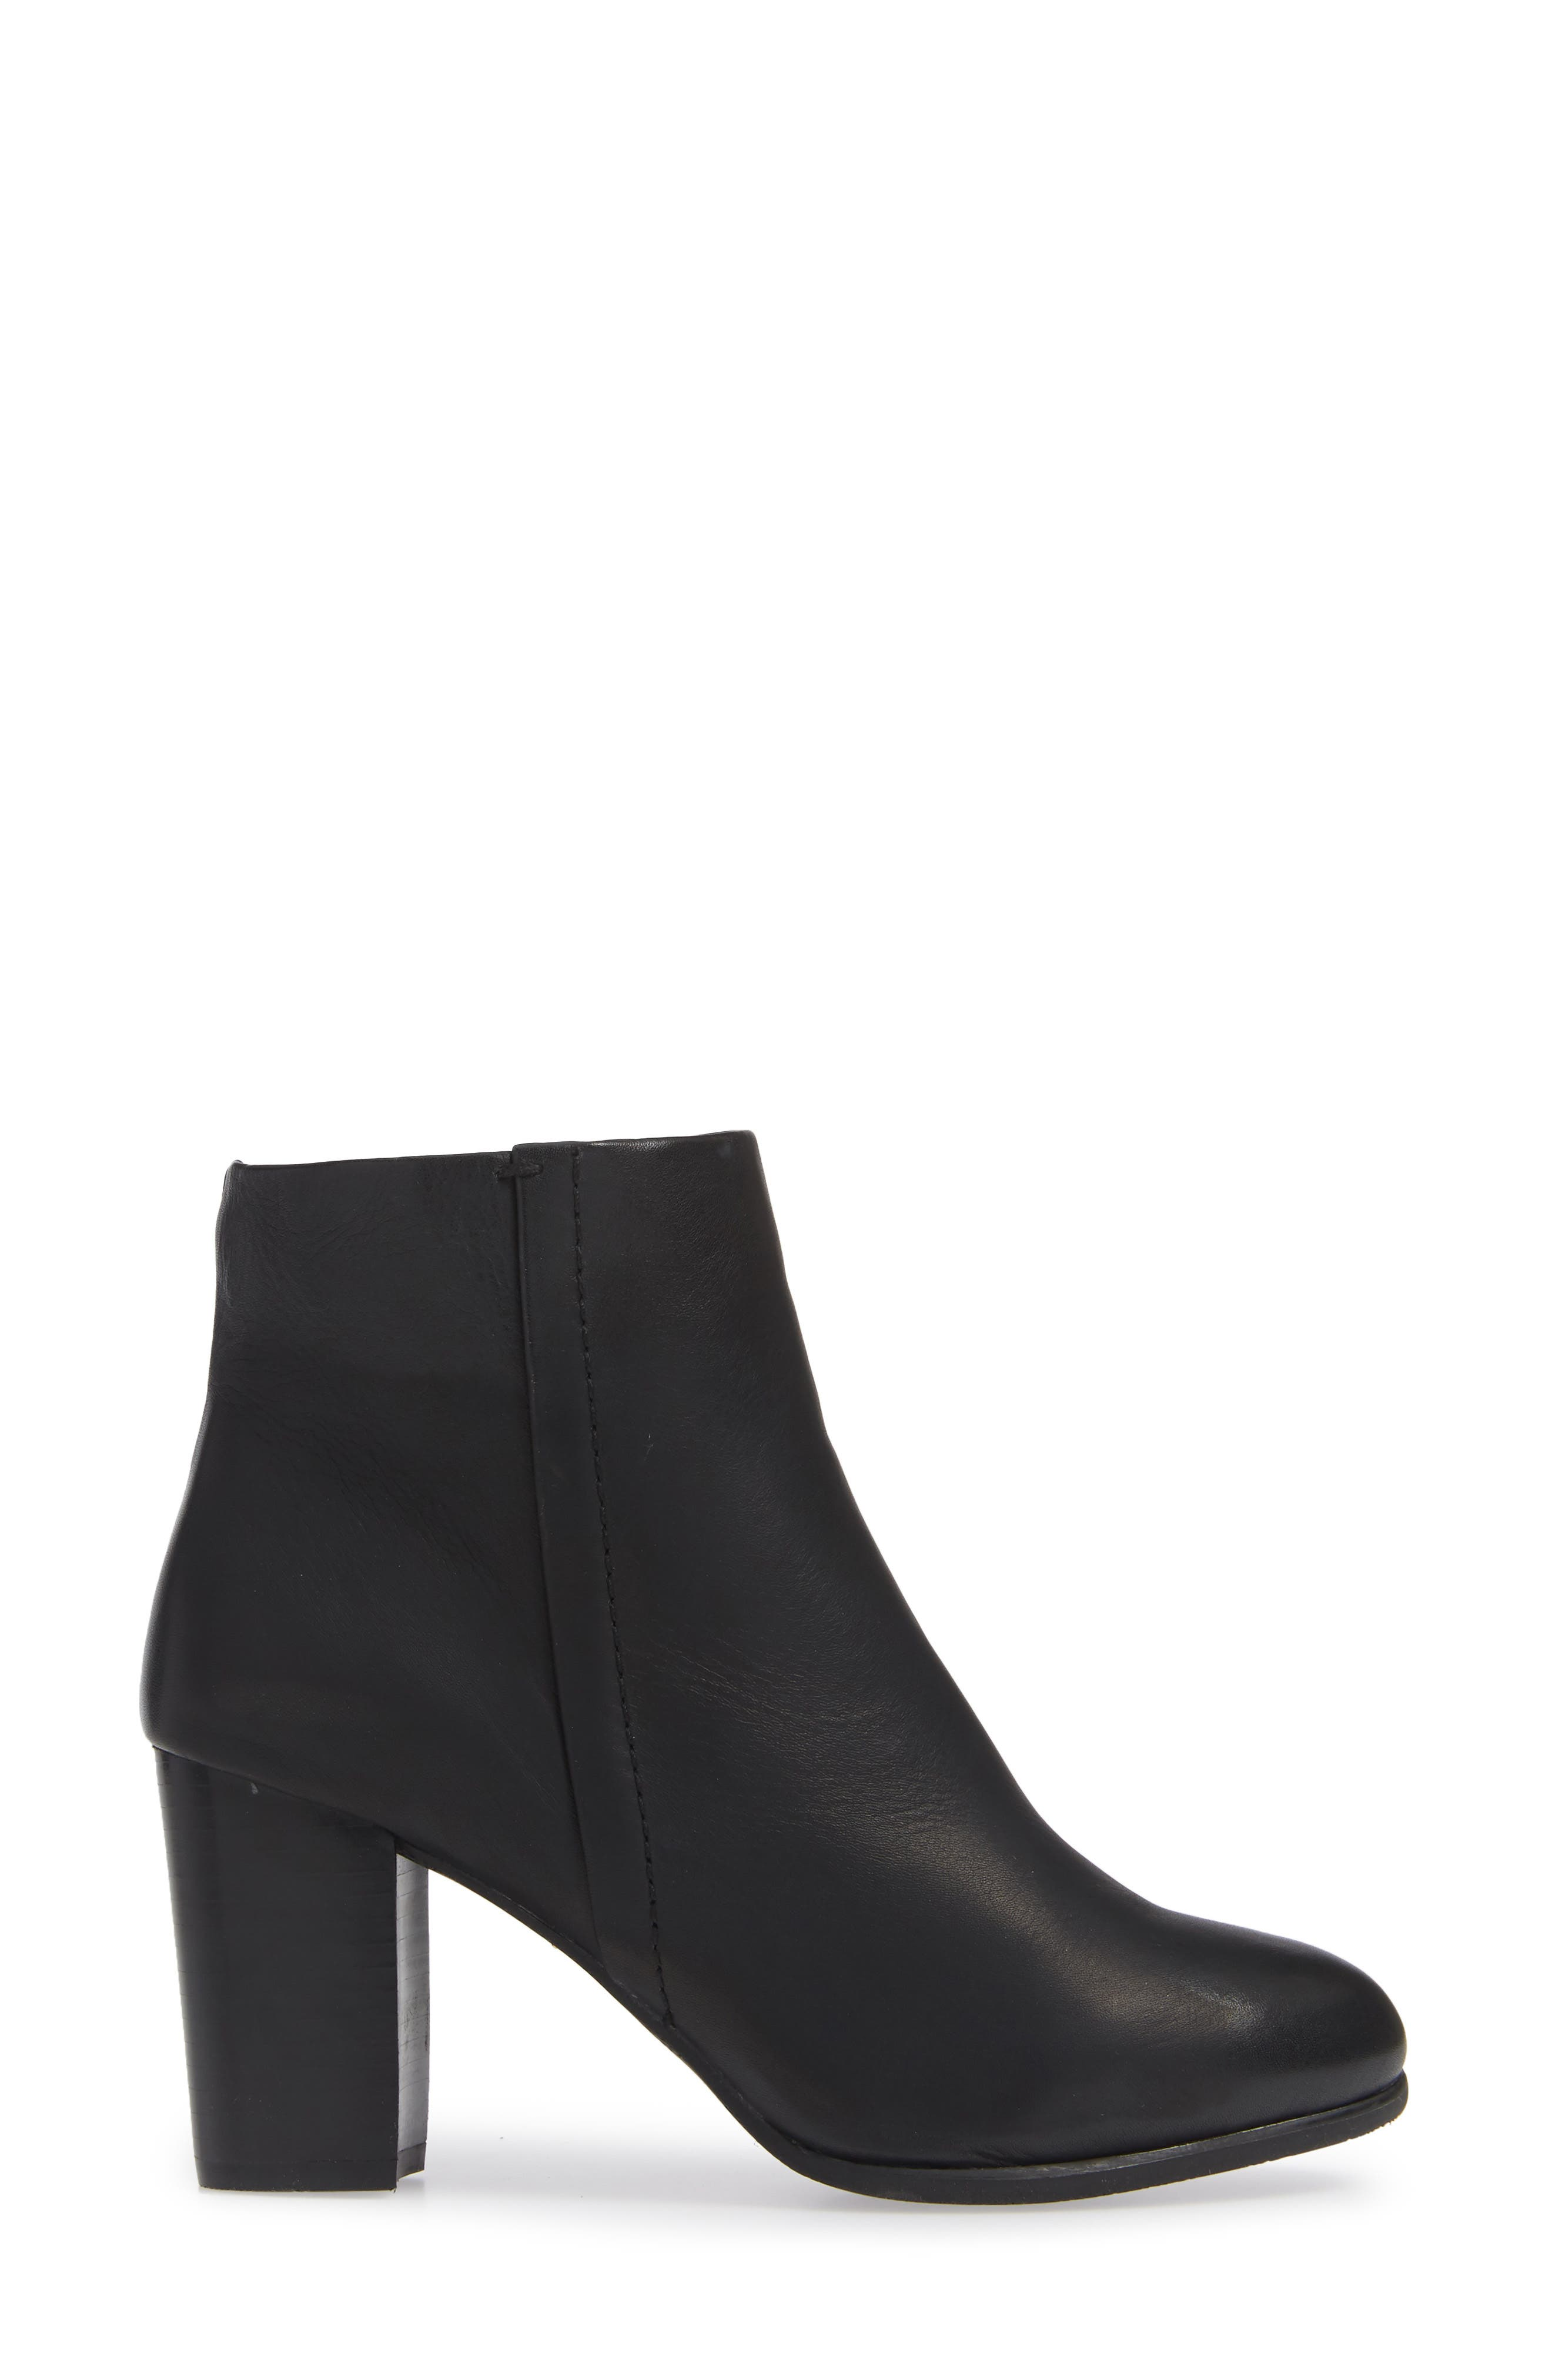 VIONIC,                             Kennedy Ankle Bootie,                             Alternate thumbnail 3, color,                             BLACK LEATHER